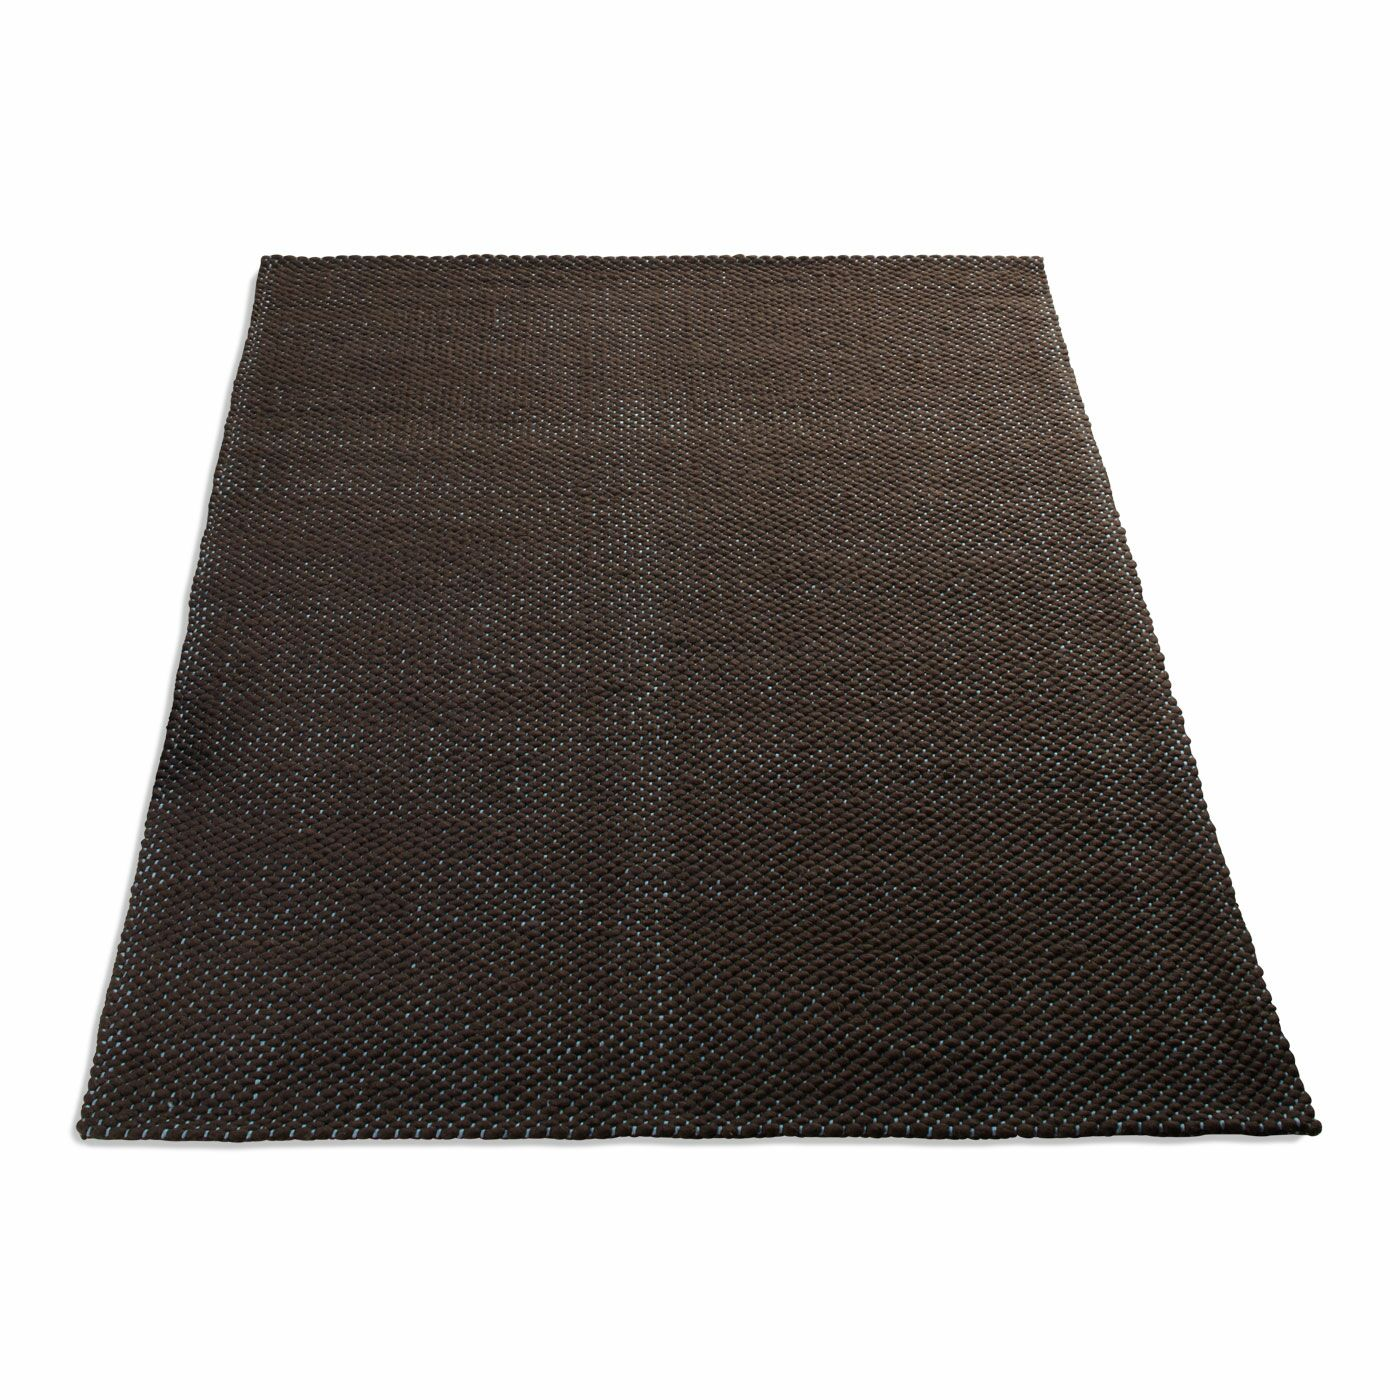 Dash Hand Woven Cotton Brown Area Rug Rug Size: Rectangle 6' x 9'